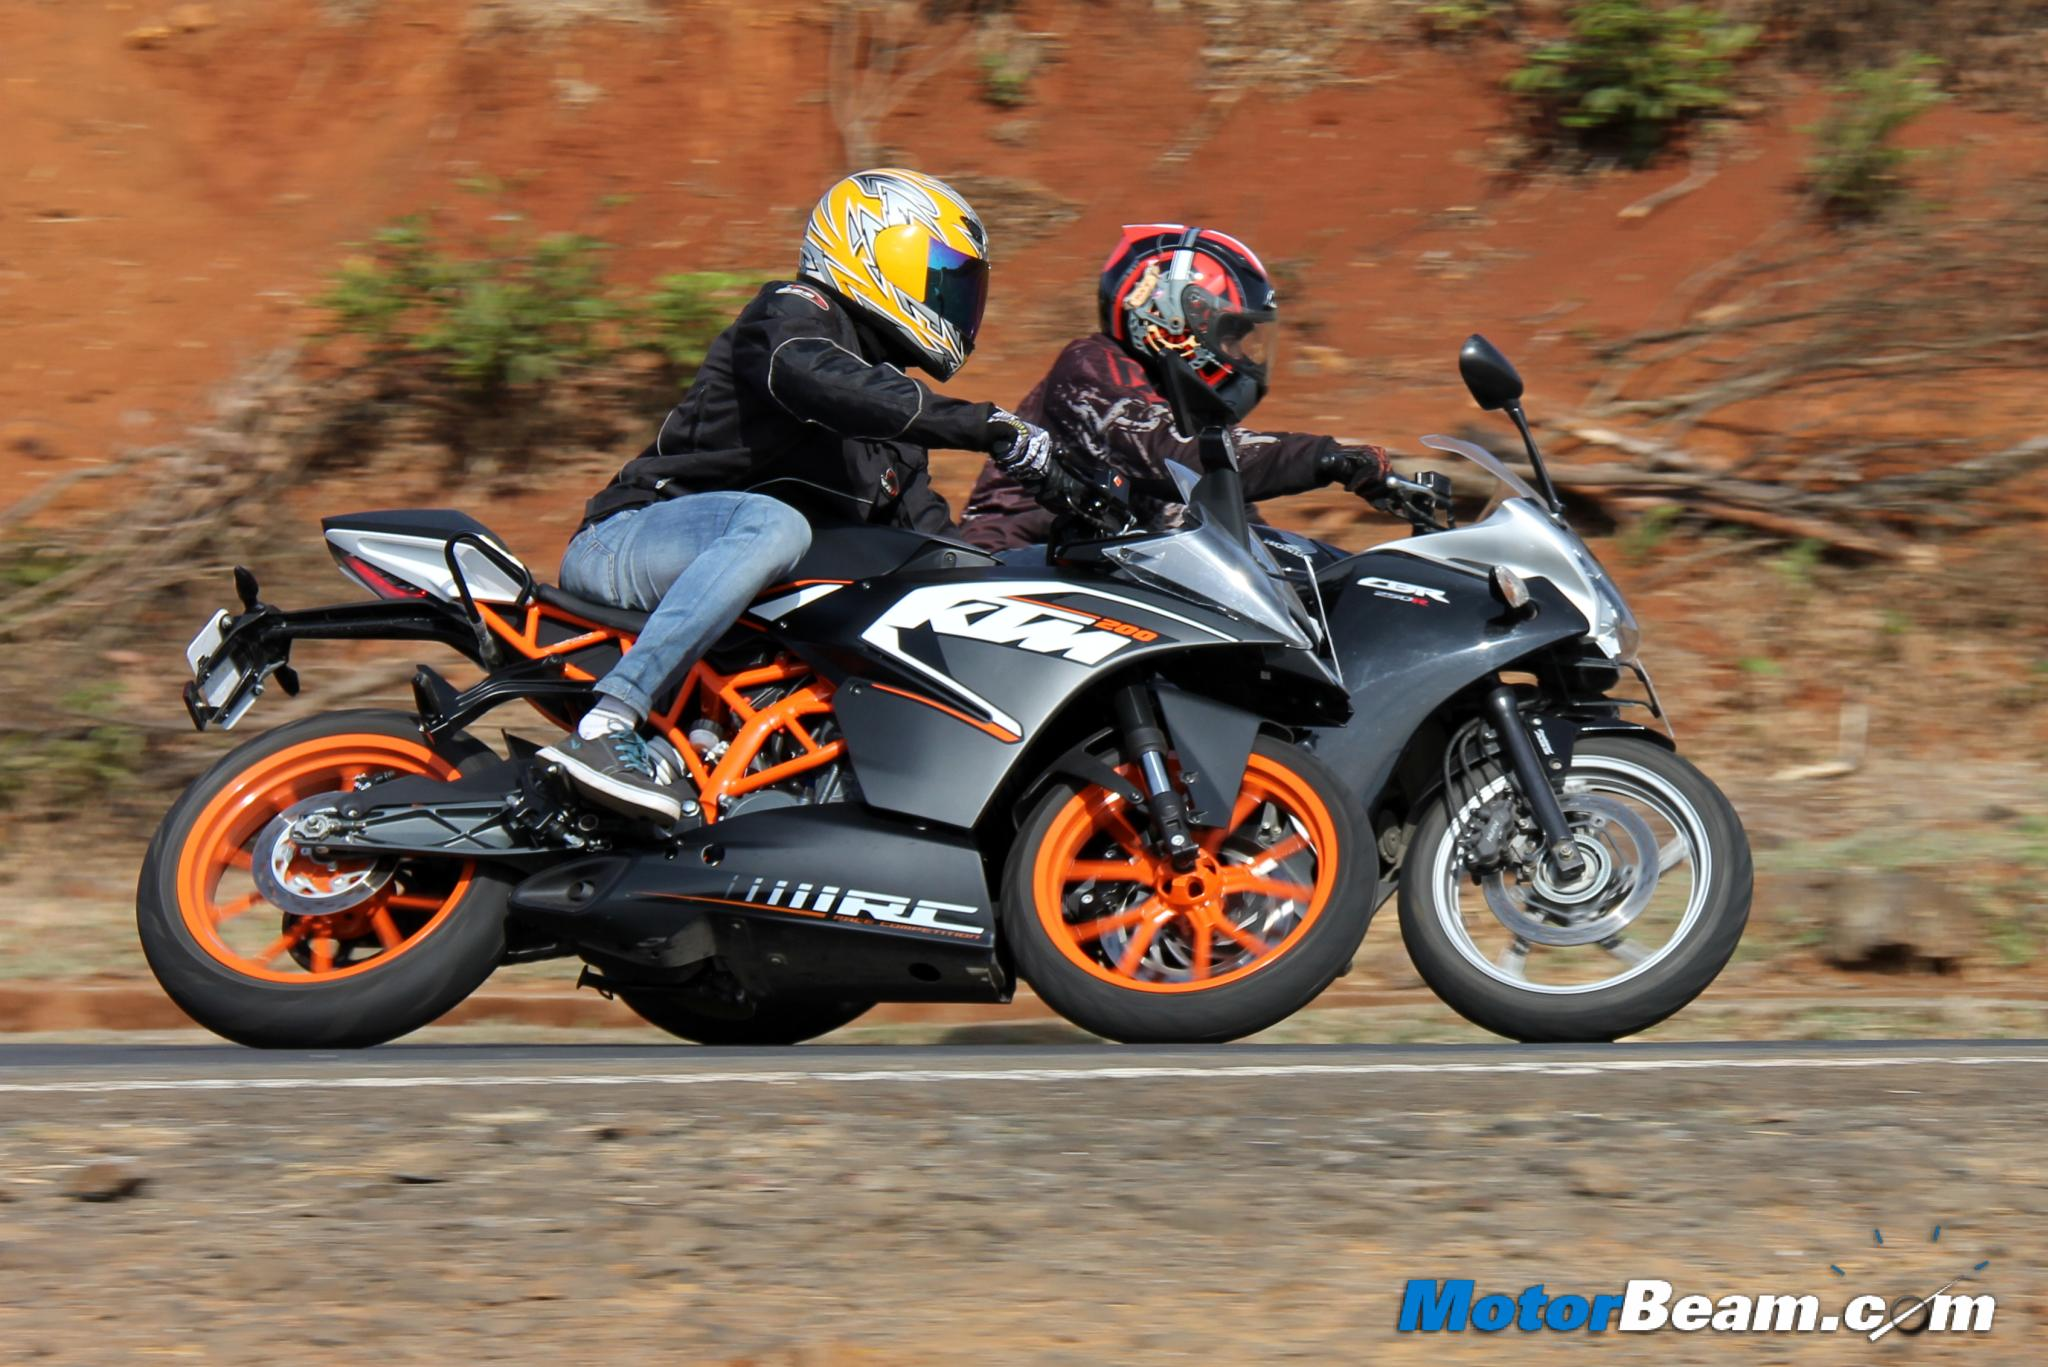 Bajaj pulsar rs200 vs ktm rc200 vs honda cbr250r comparison youtube - Bajaj Pulsar Rs200 Vs Ktm Rc200 Vs Honda Cbr250r Comparison Youtube 4